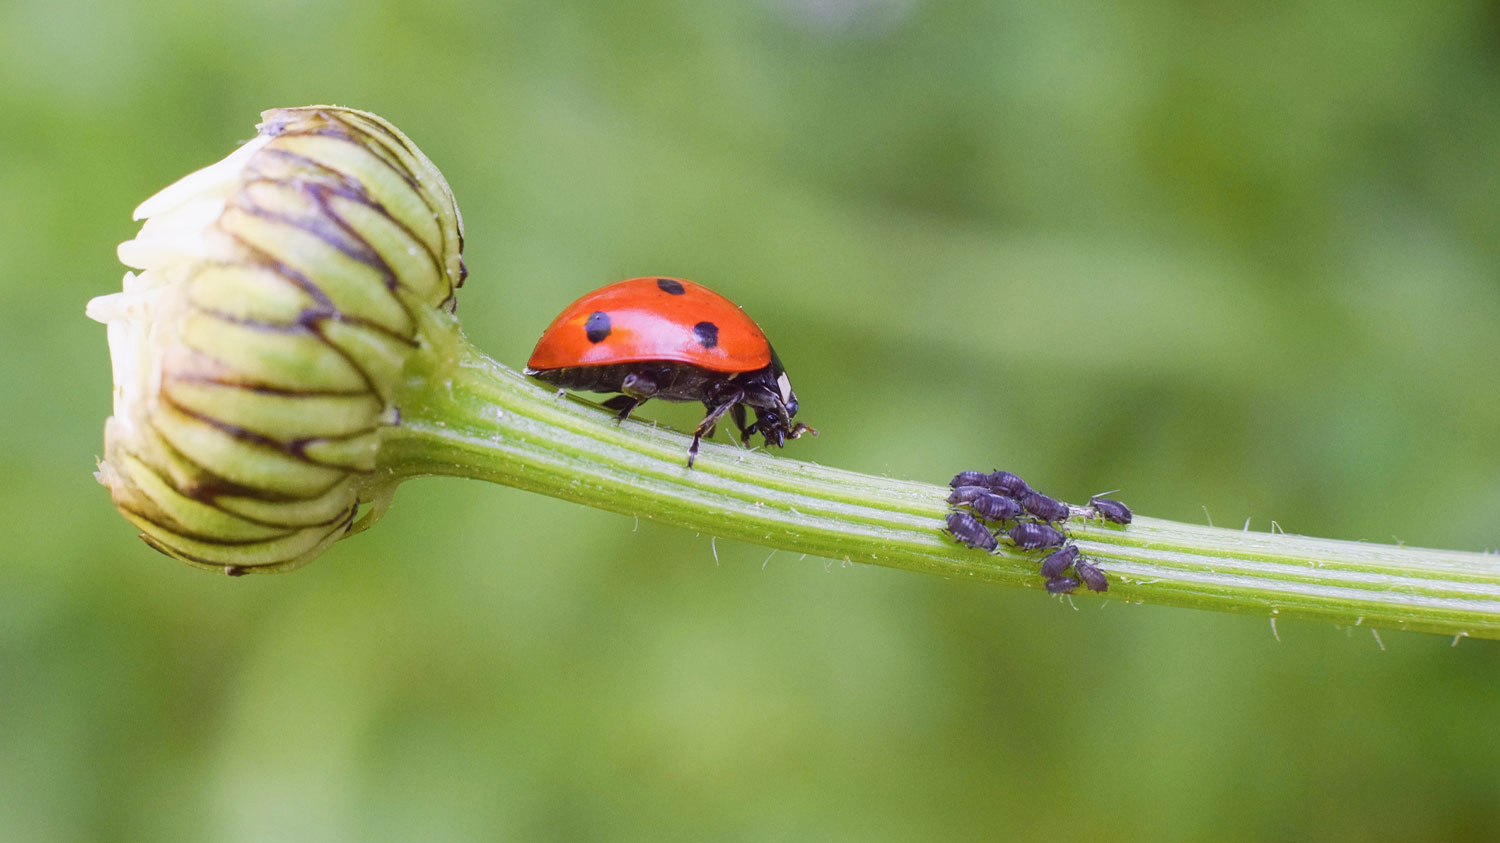 Lady Bugs and Aphids on Plant